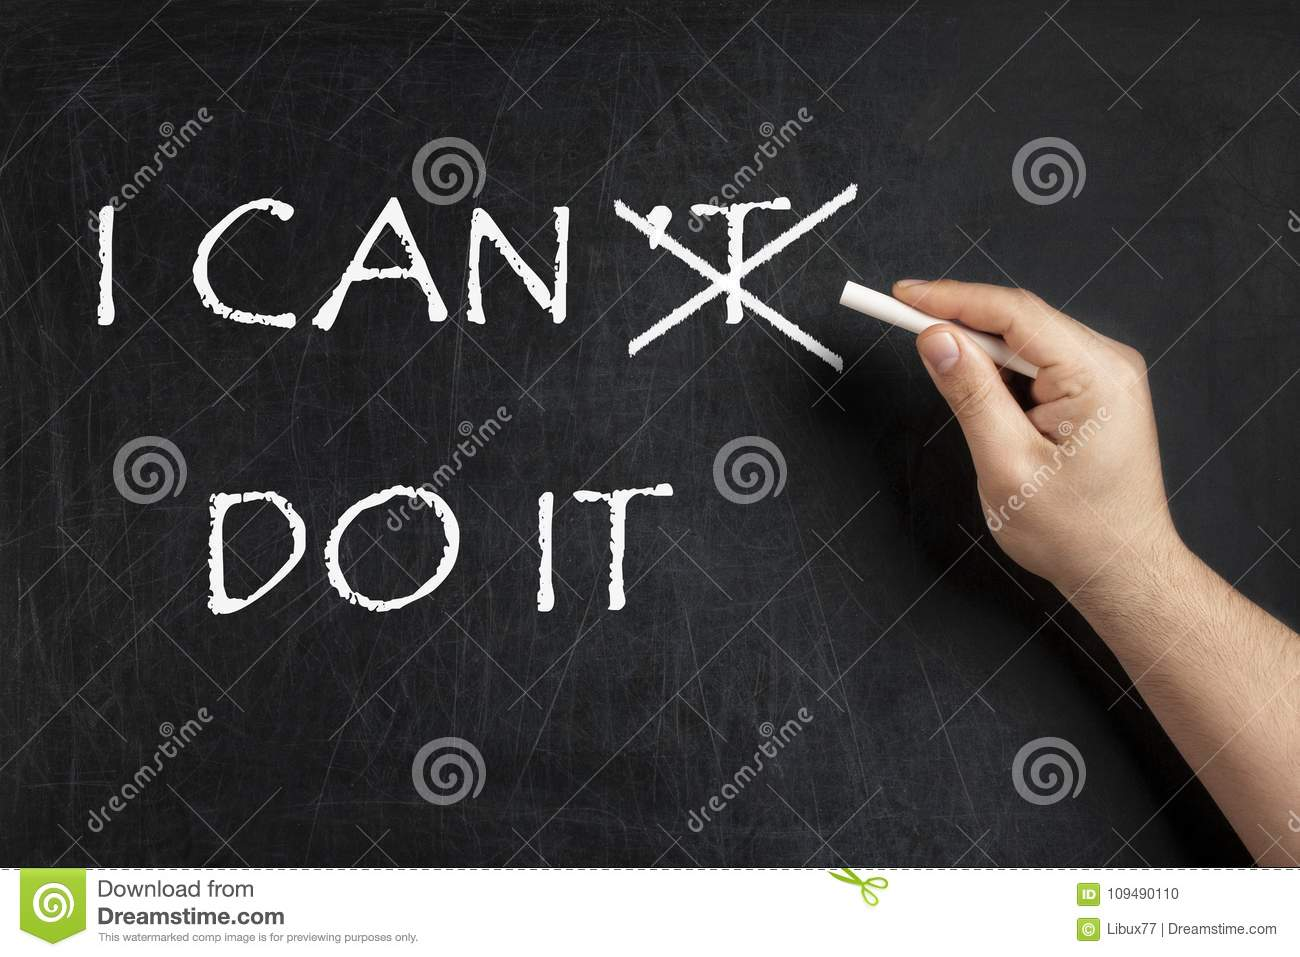 Can`t do becoming I can do it on blackboard chalkboard